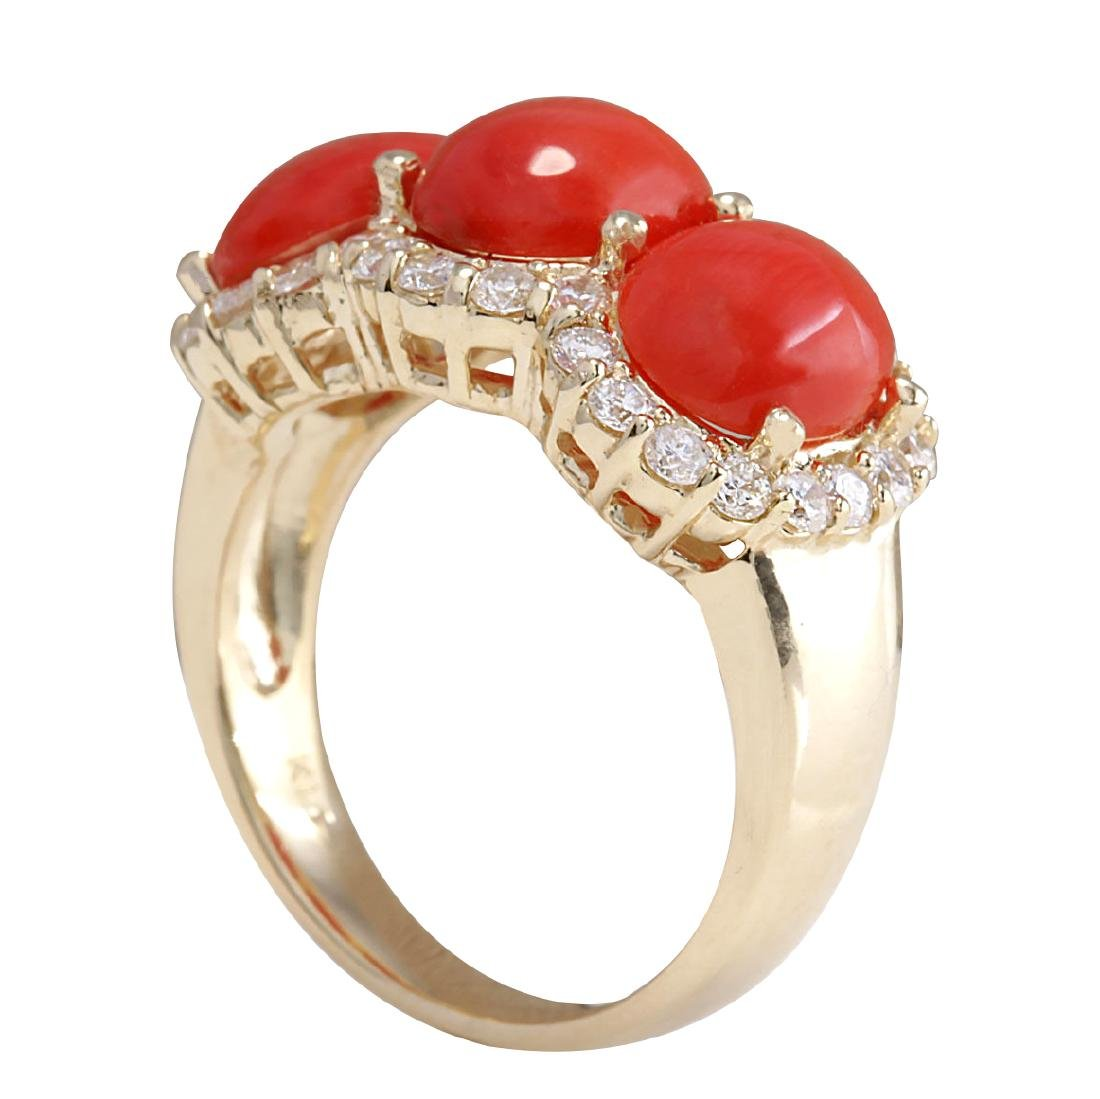 5.10CTW Natural Red Coral And Diamond Ring 18K Solid - 3